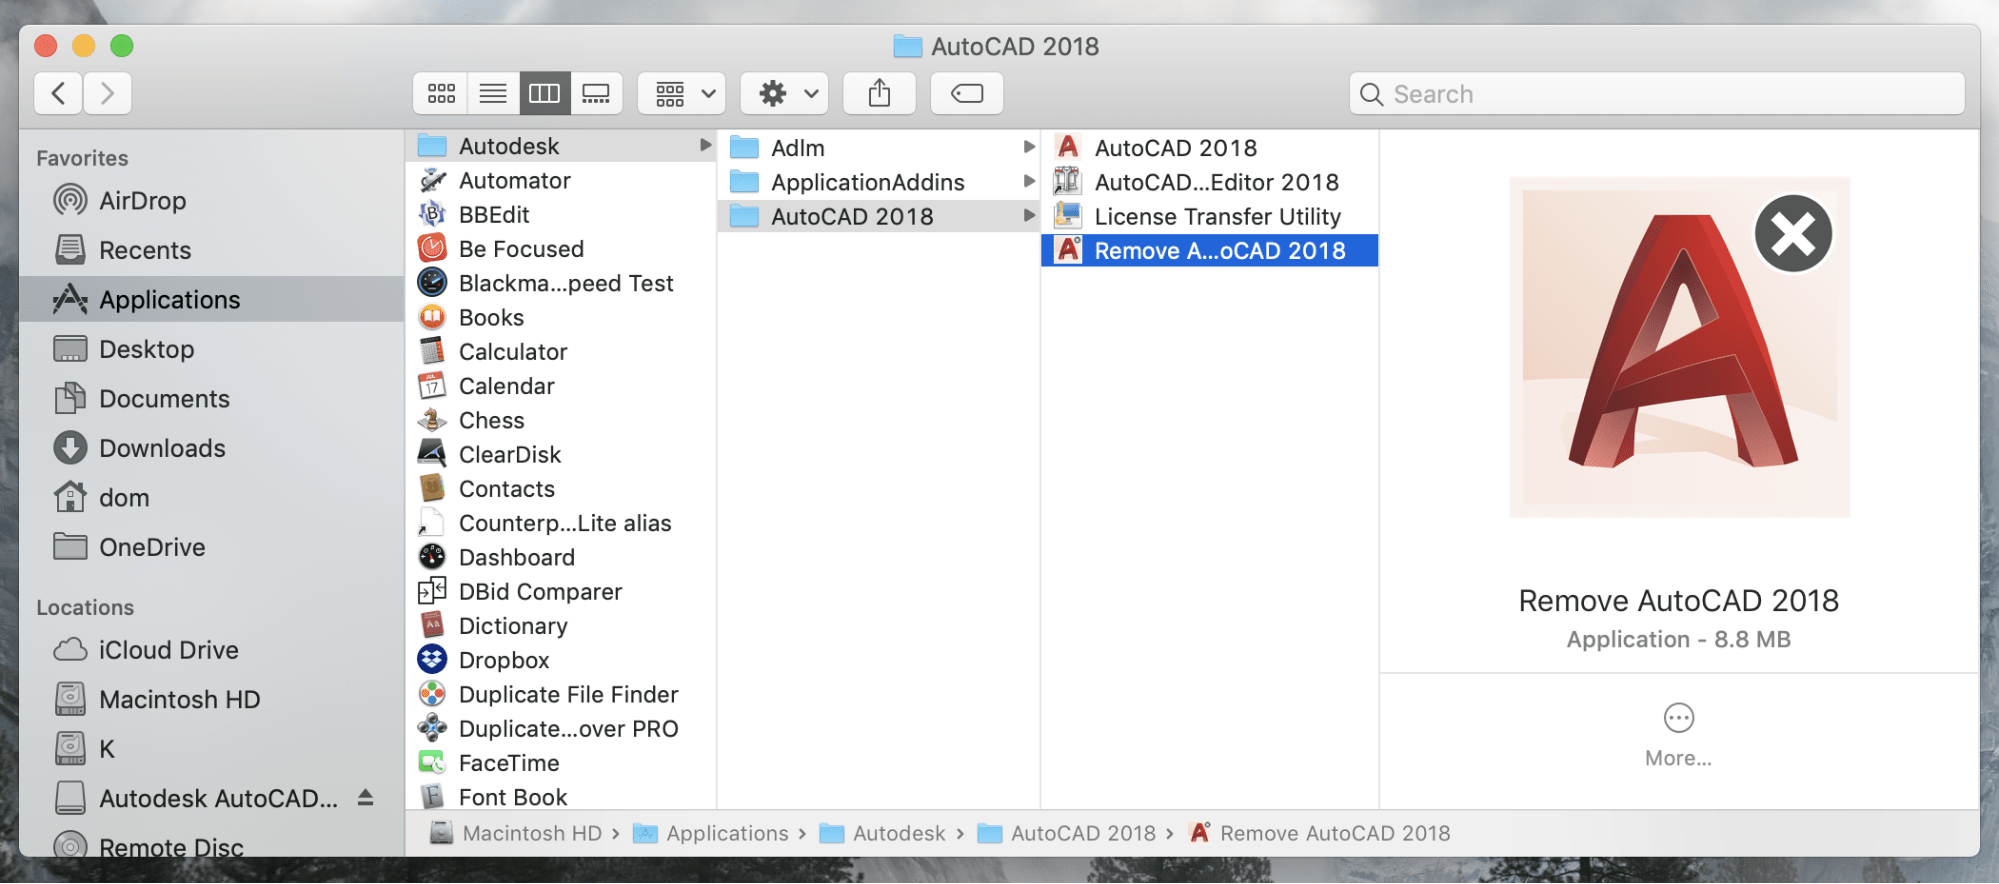 How to Uninstall AutoCAD on a Mac - Complete Removal Guide